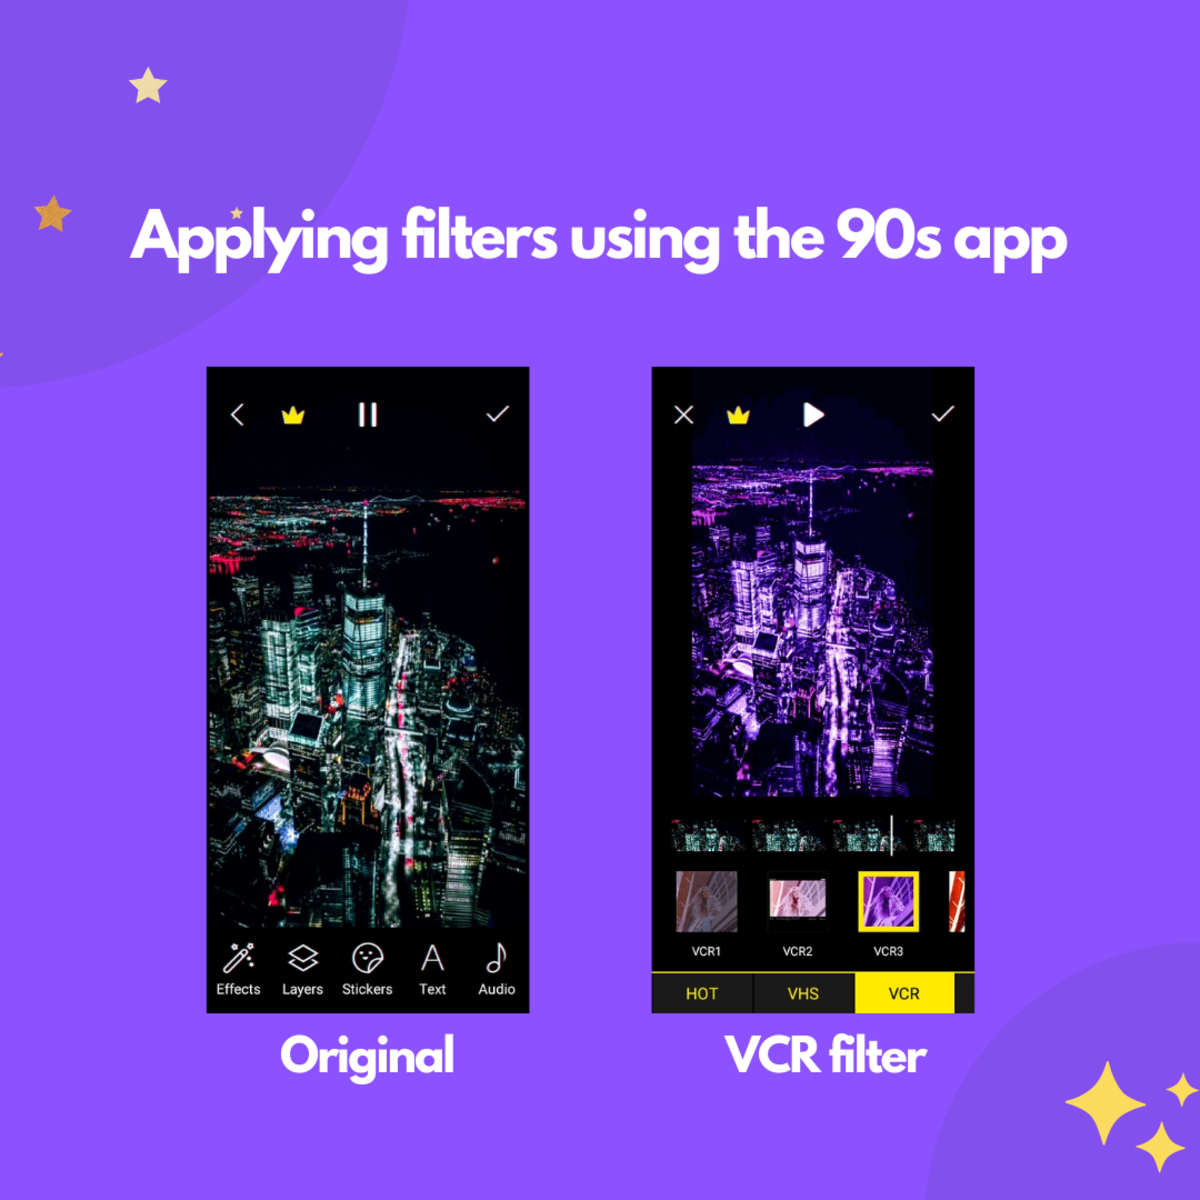 An example of using filters with the 90s app, the left-hand side screenshot shows the original and the right-hand side shows the filter applied, leading to an aesthetic and pretty effect